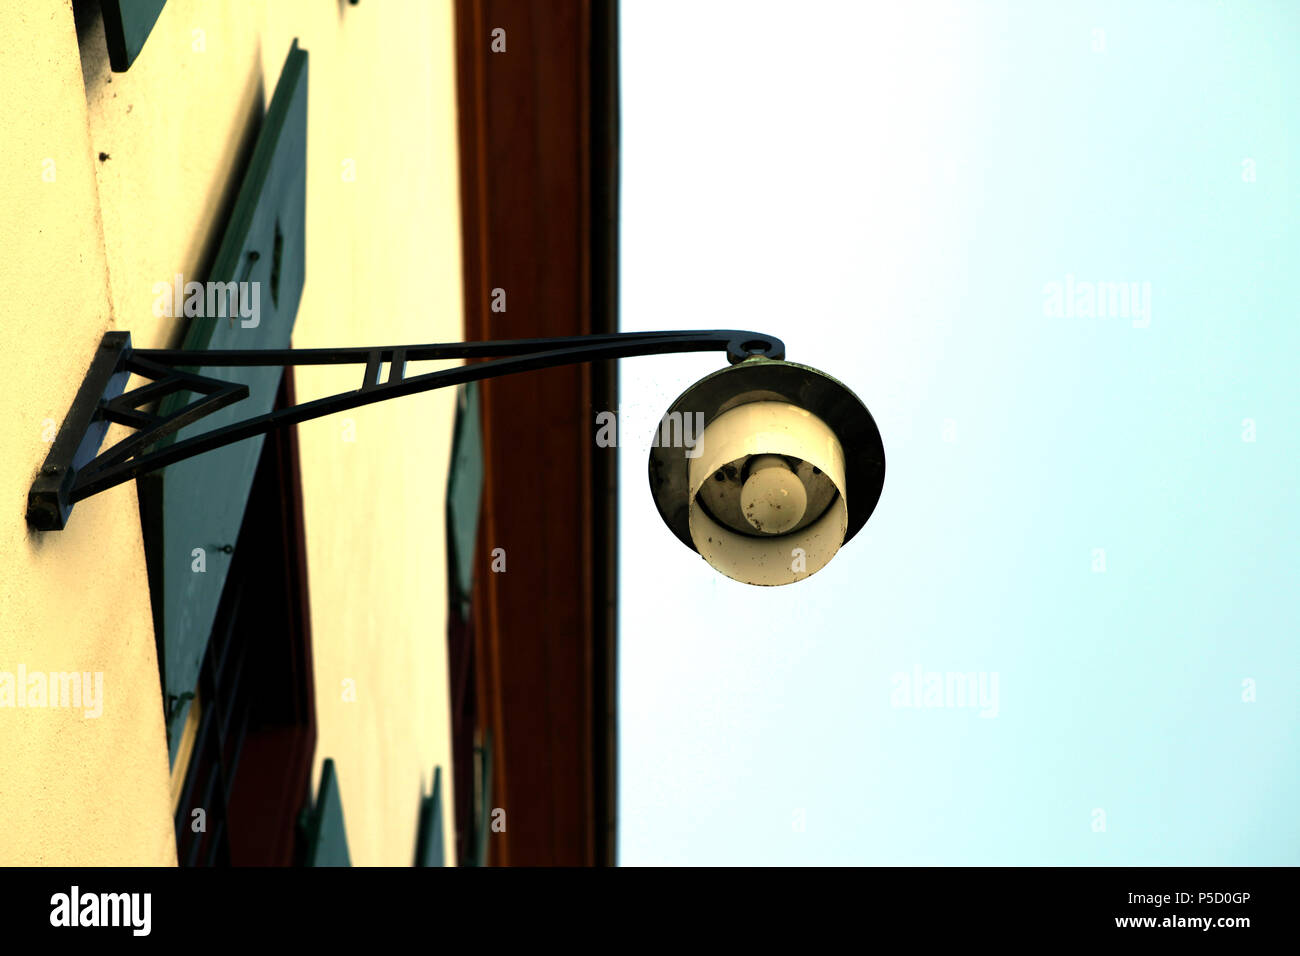 French wall lamp - Stock Image